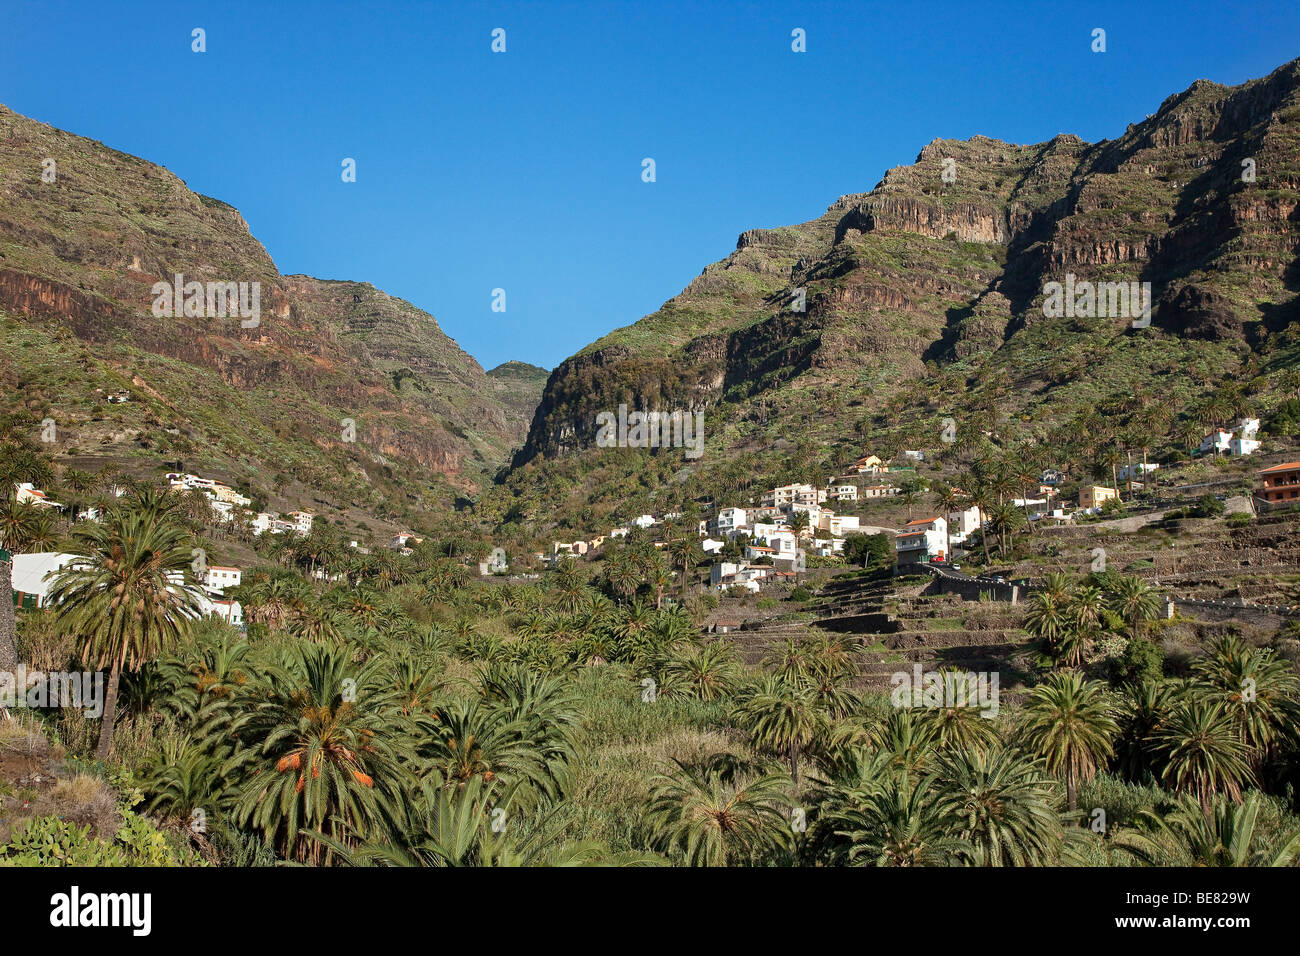 A mountain village at Valle Gran Rey under blue sky, La Gomera, Canary Islands, Spain, Europe - Stock Image